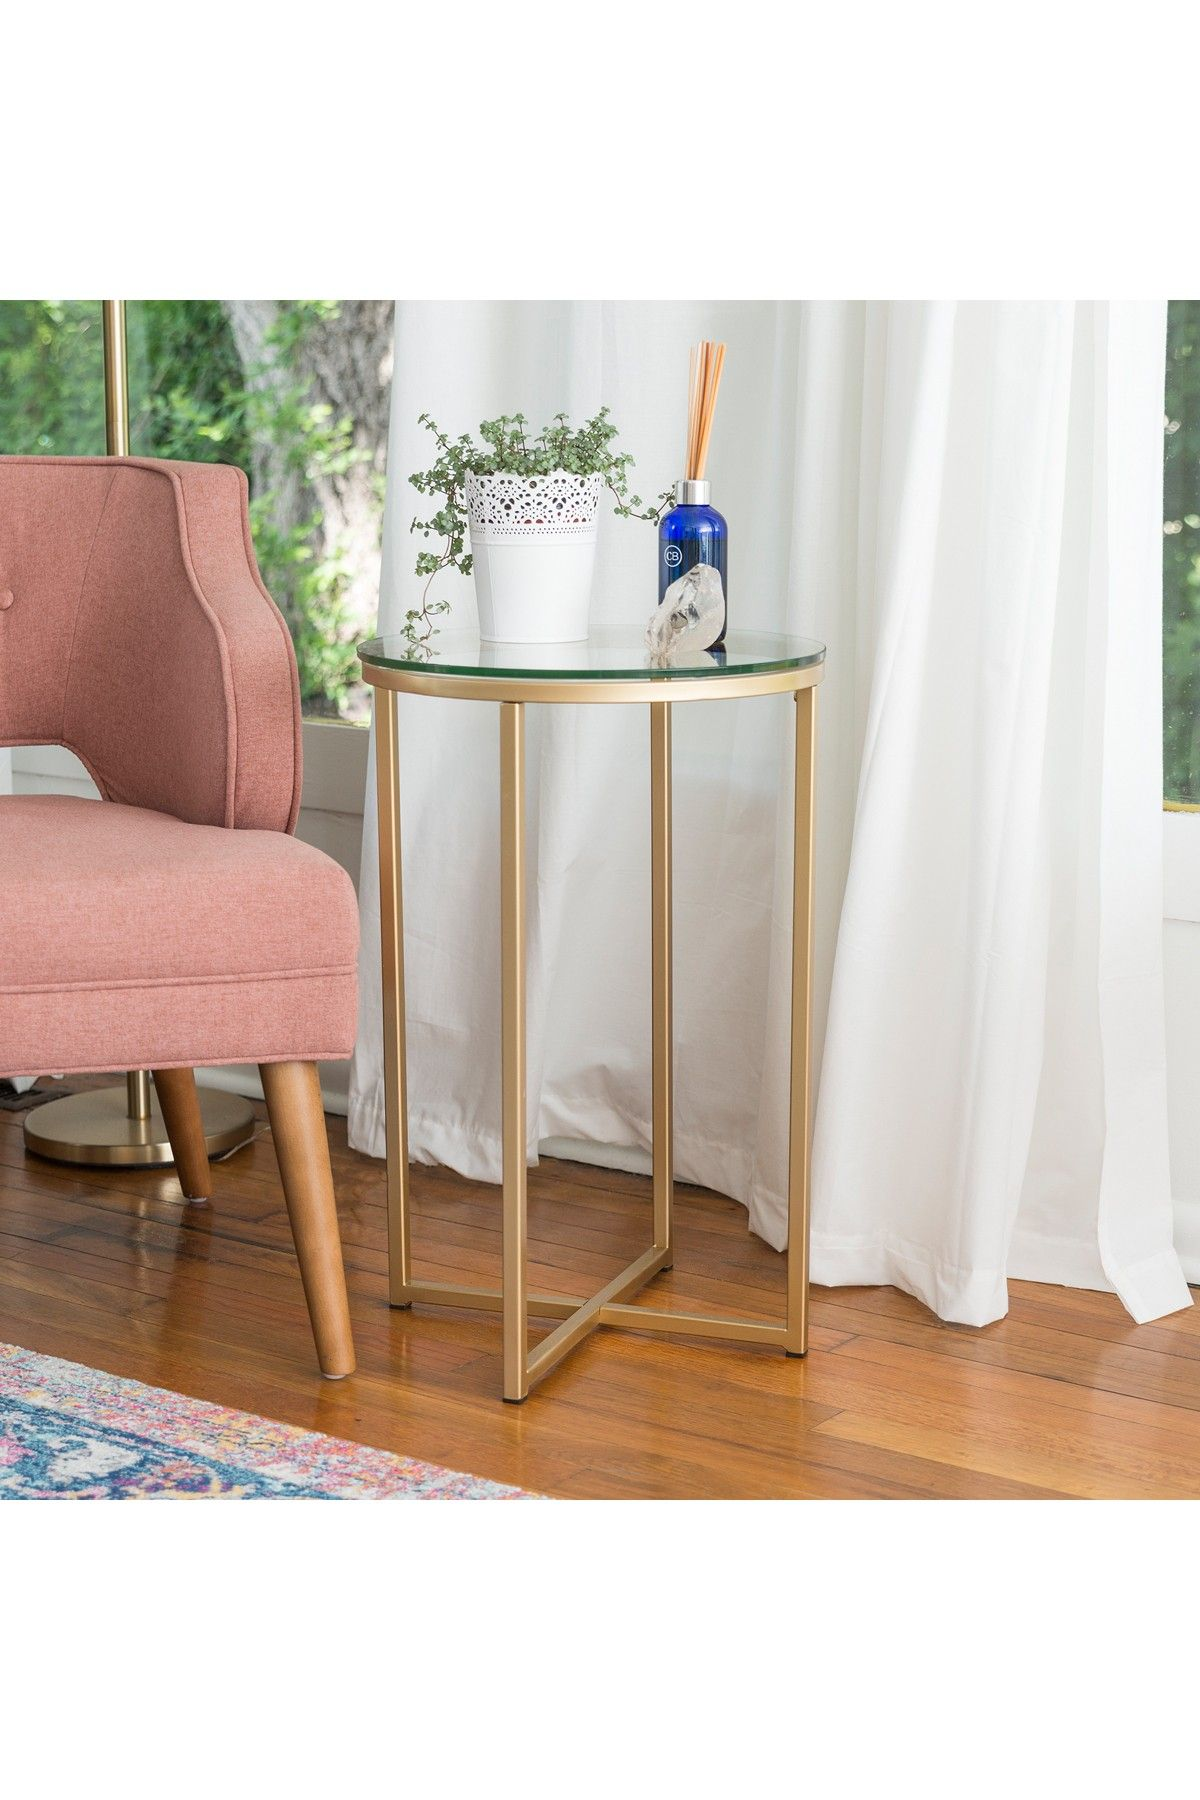 Walker Edison Furniture pany 16 Round Glass Gold Side Table